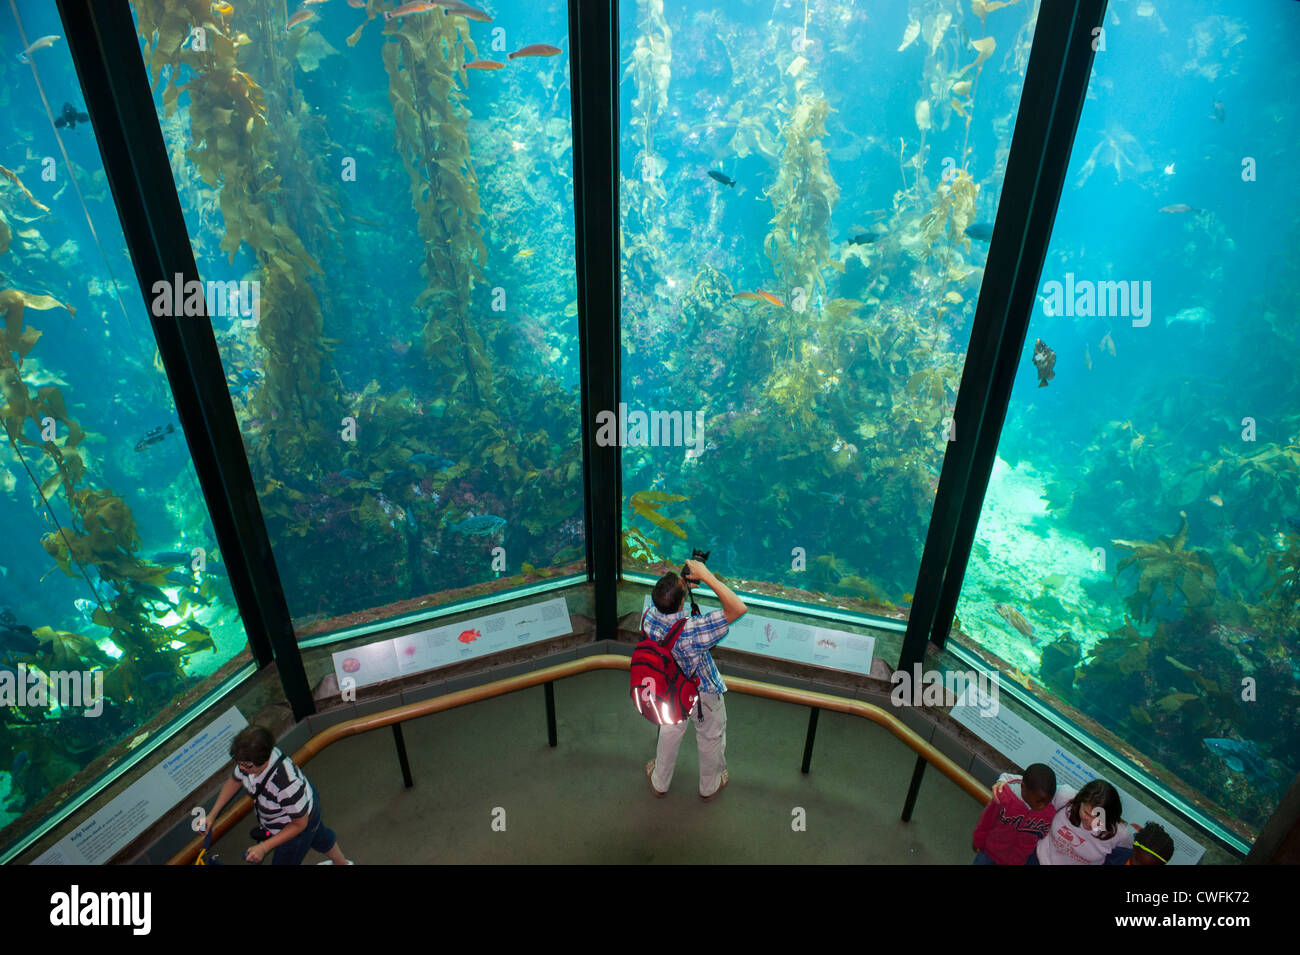 usa-california-ca-monterey-bay-aquarium-kelp-forest-exhibit-CWFK72.jpg